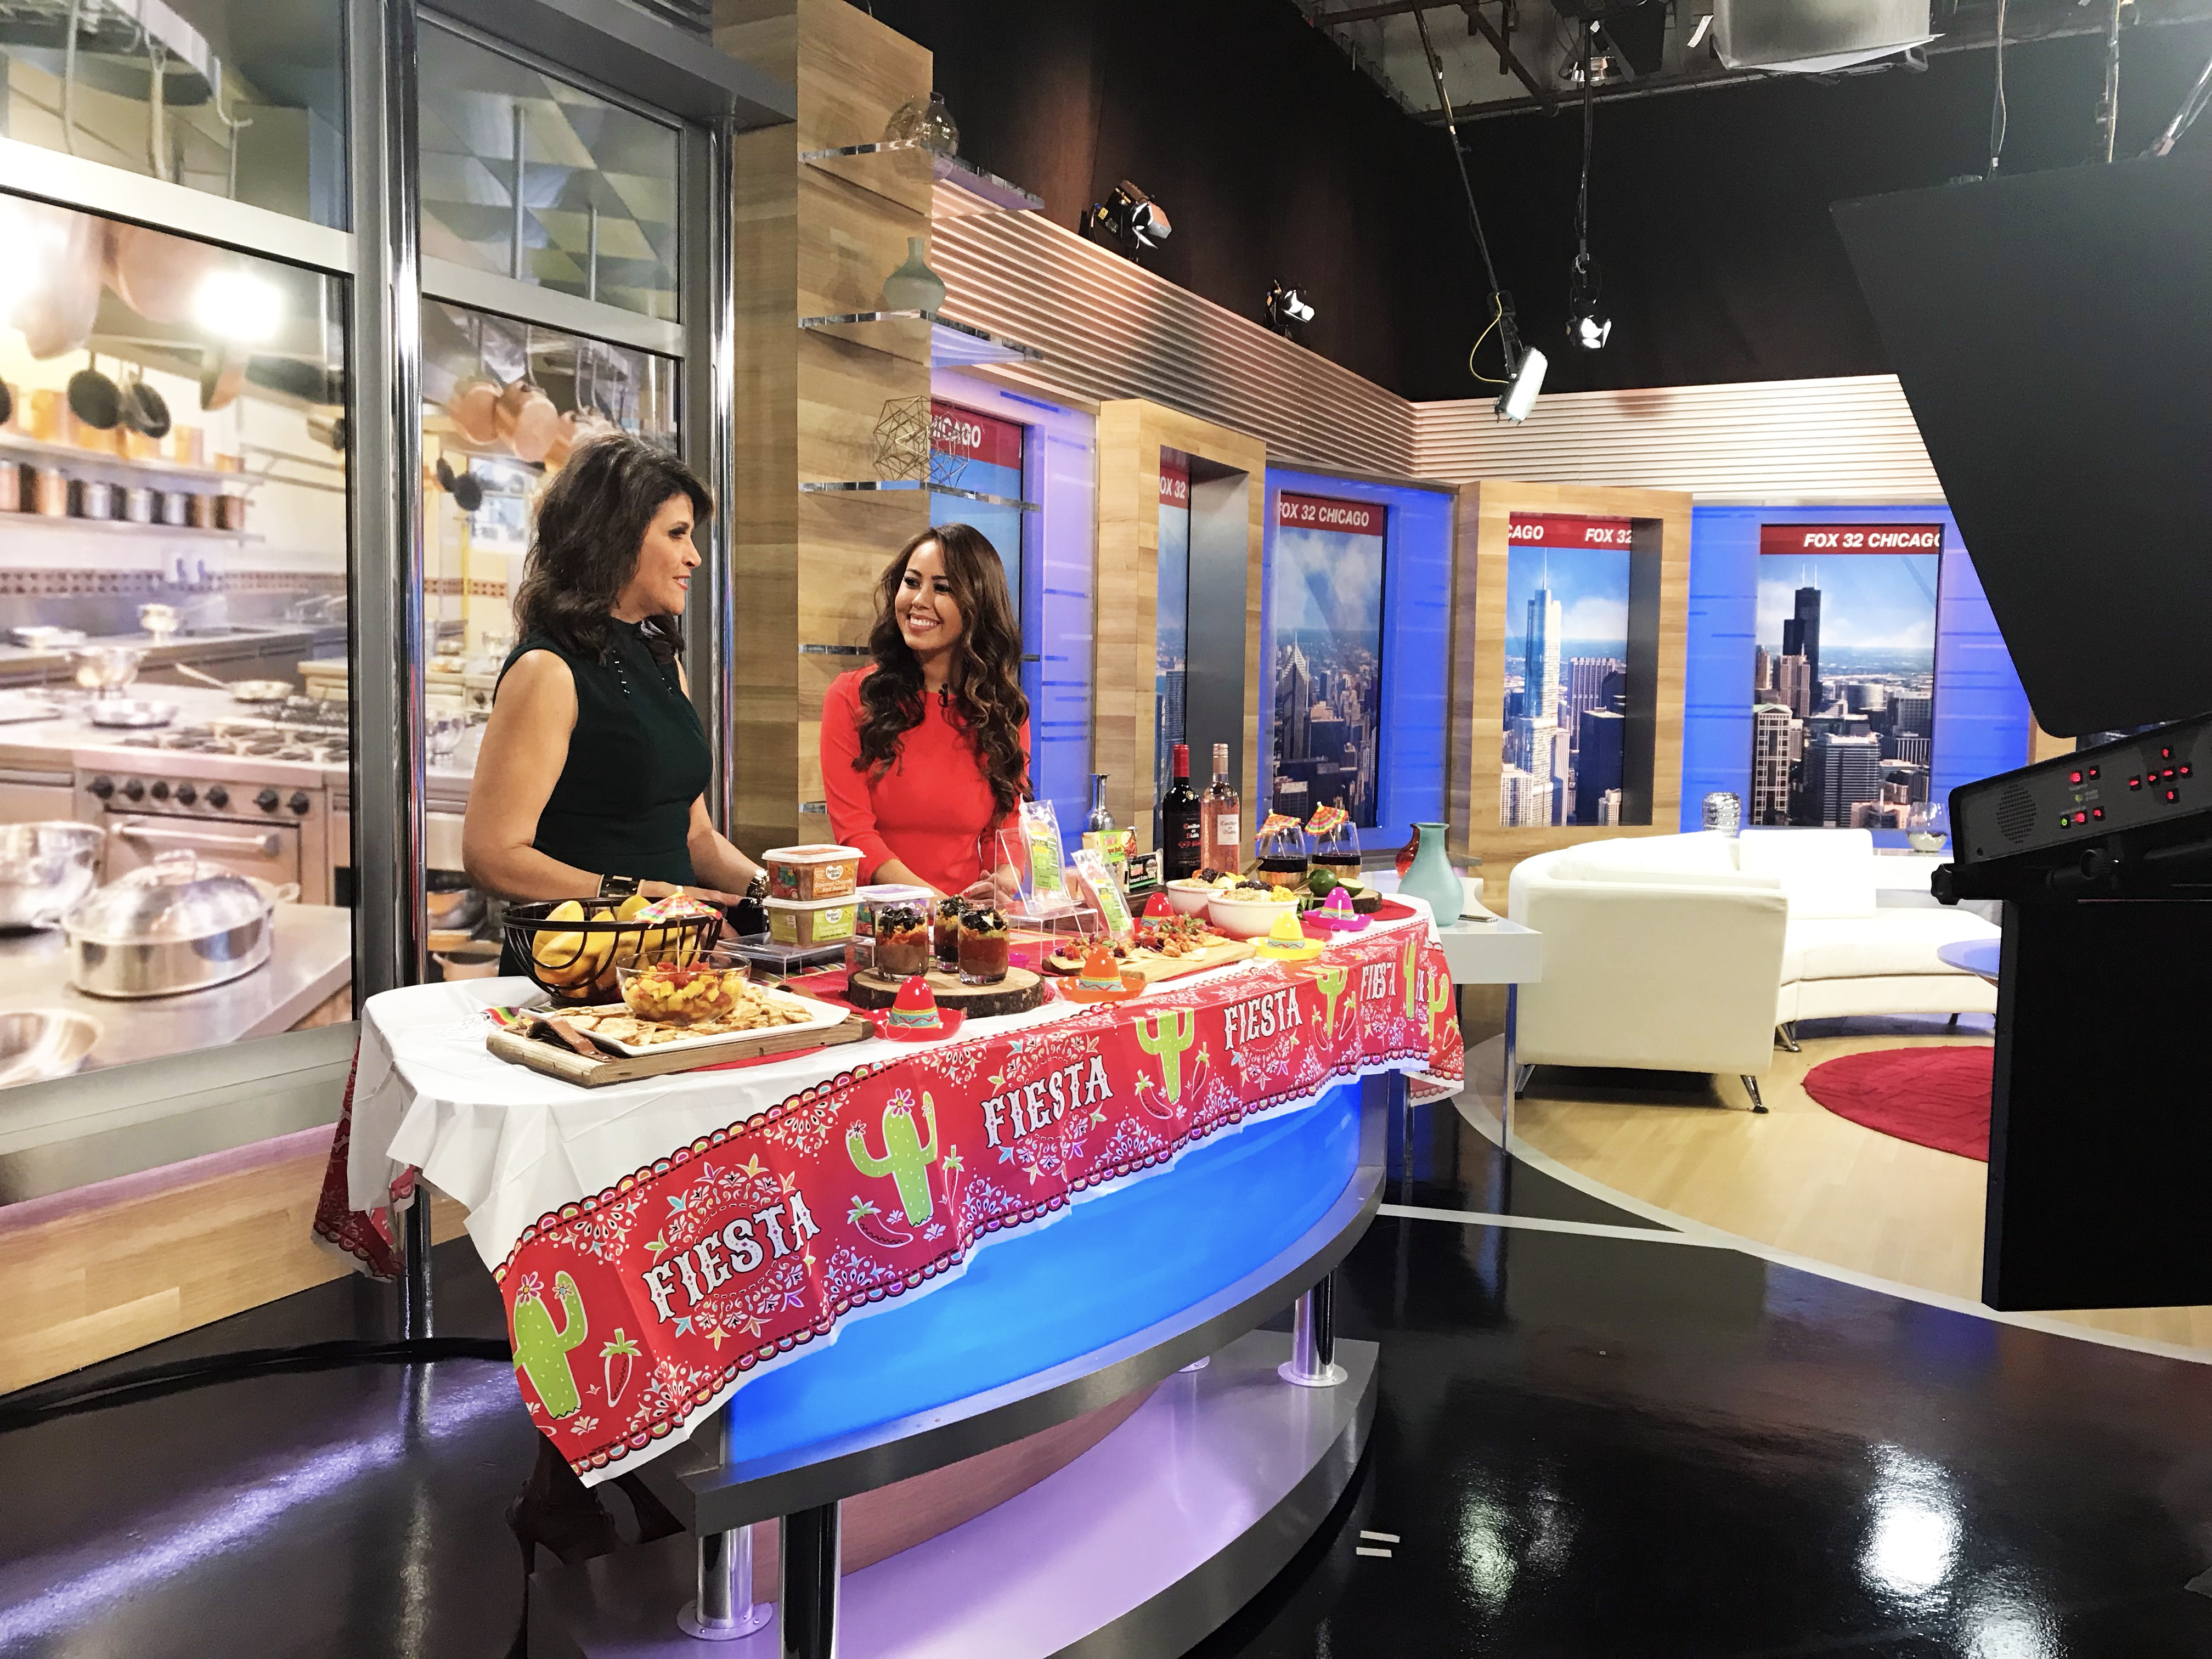 Registered Dietitian, Mia Syn, healthy Cinco de Mayo, fox chicago, Better Bean, Laura's Lean, Cabot Cheese, Casillero del Diablo's Red Blend and Mangos.